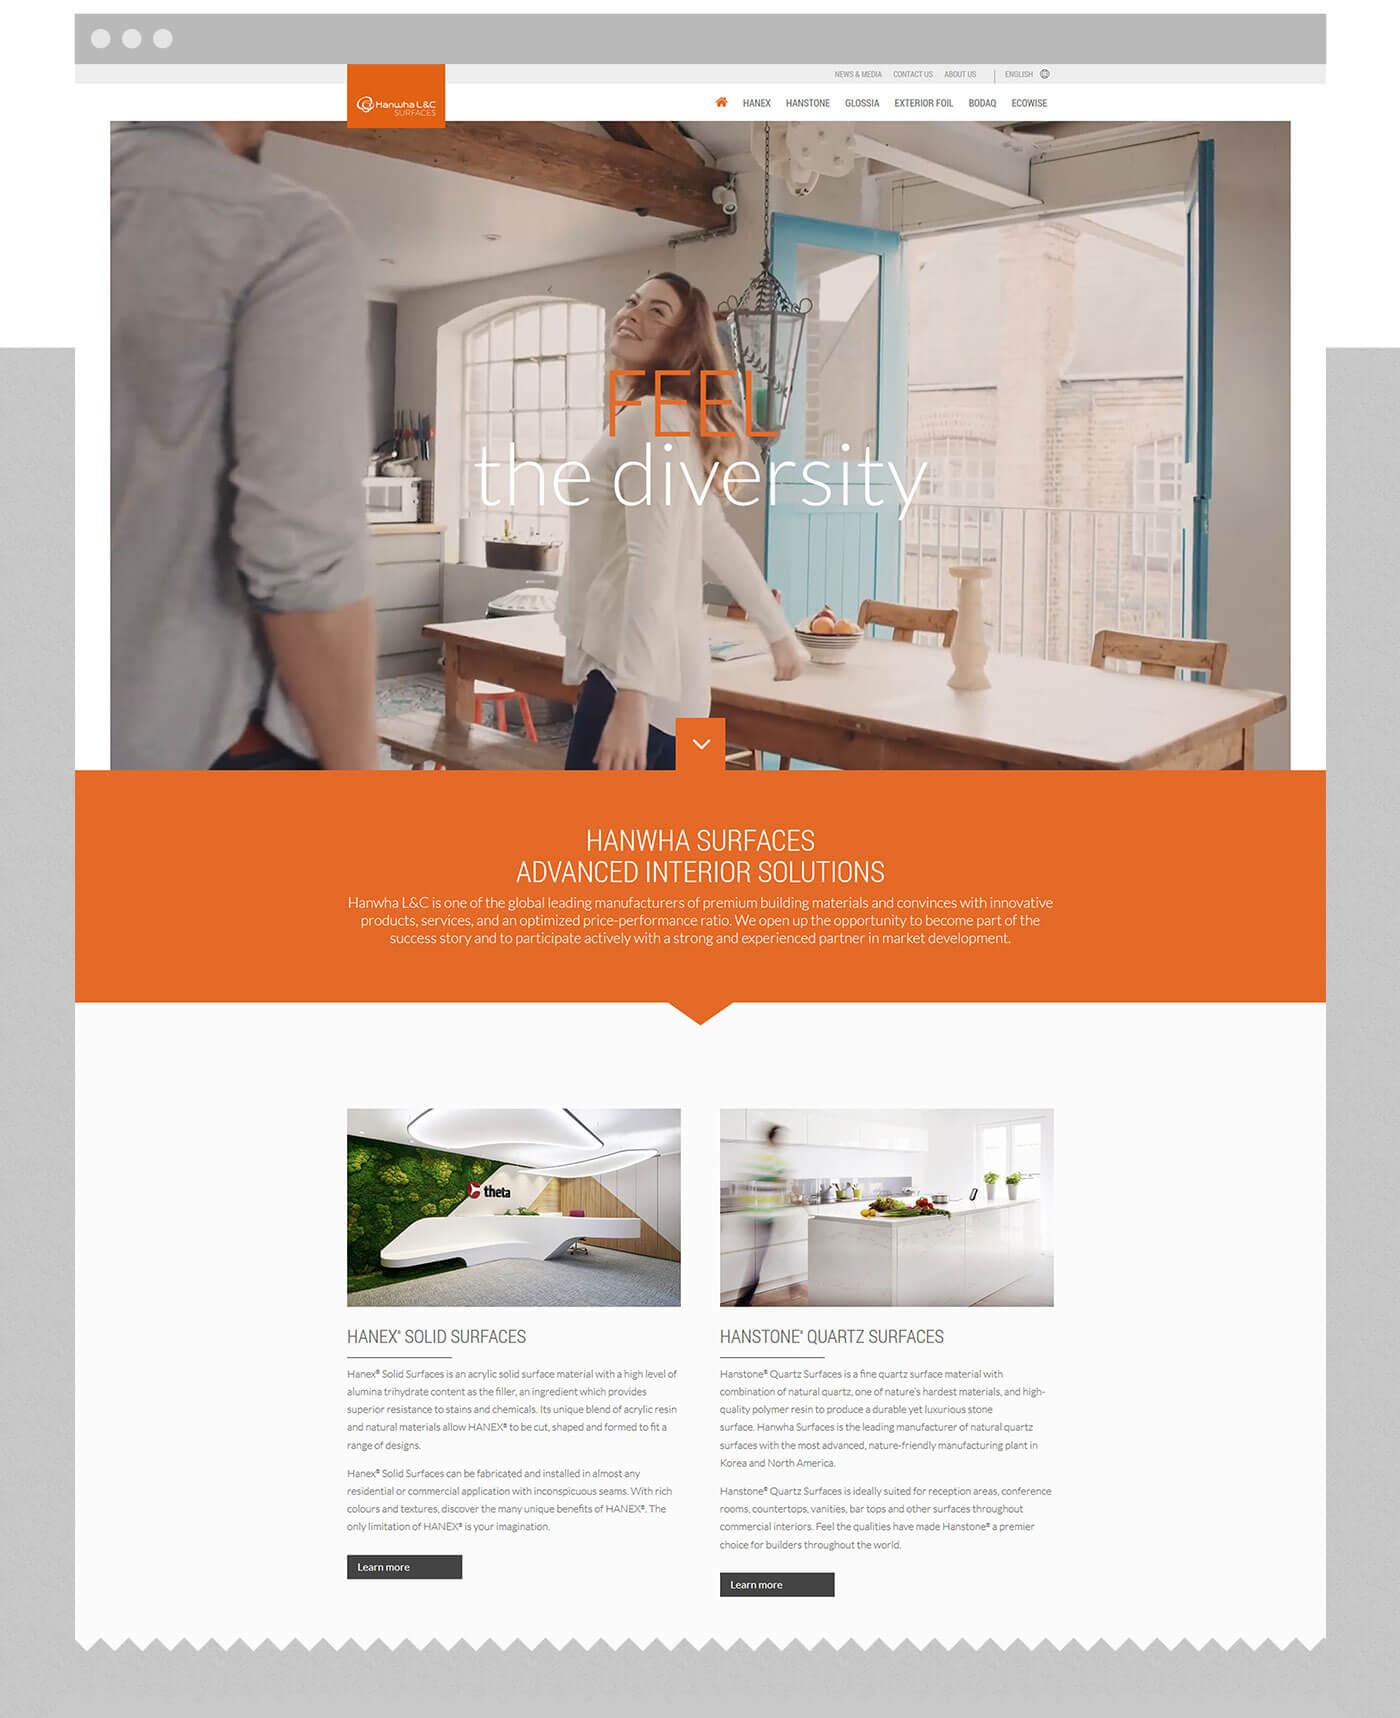 webdesign stuttgart - dt media group - hanwha surfaces